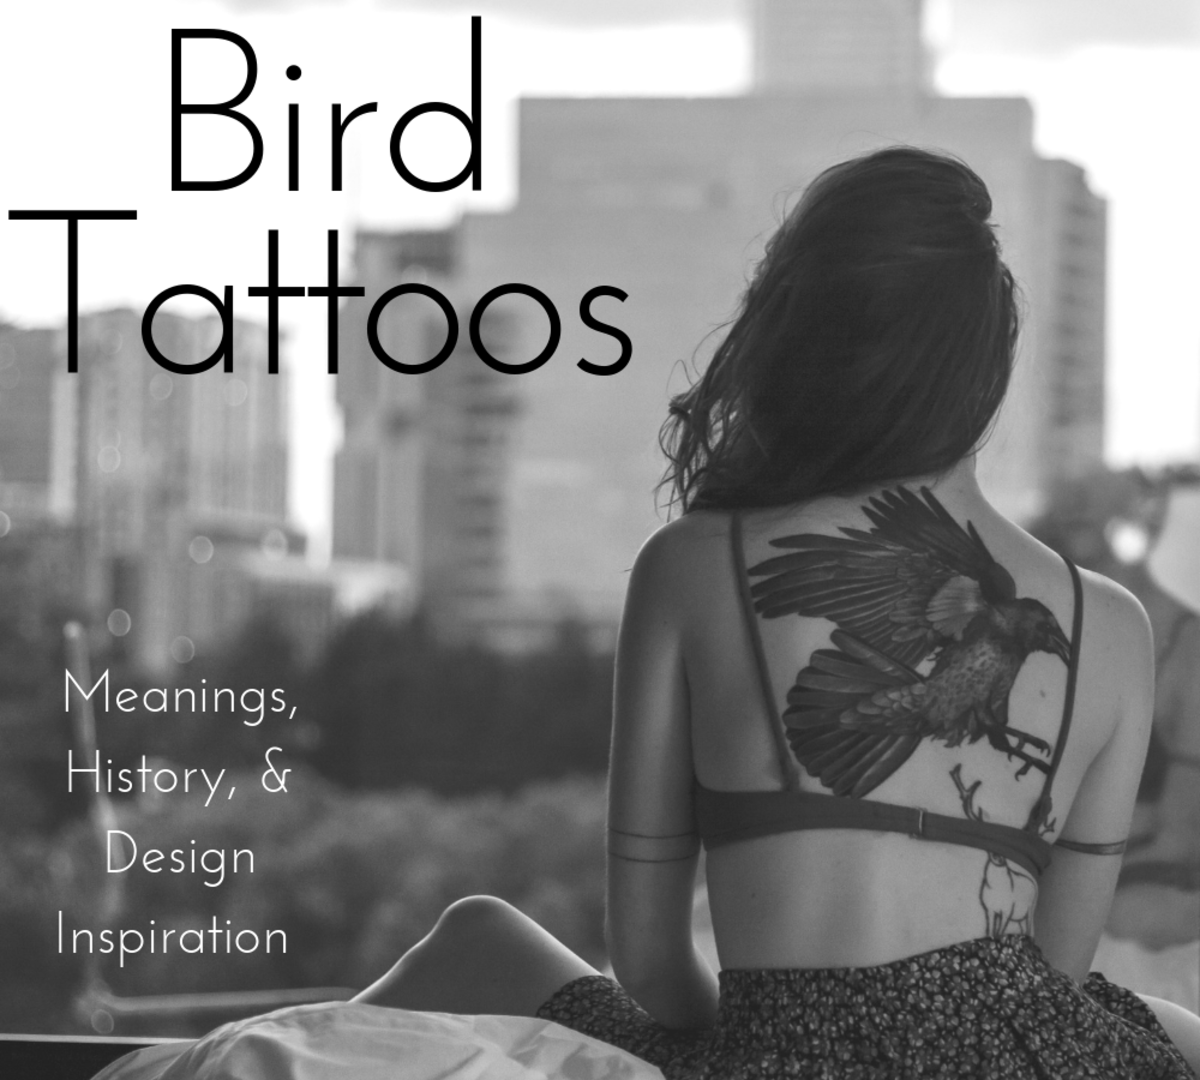 72246db56607d Bird Tattoos Interpreted: What Various Birds Mean & Represent | TatRing